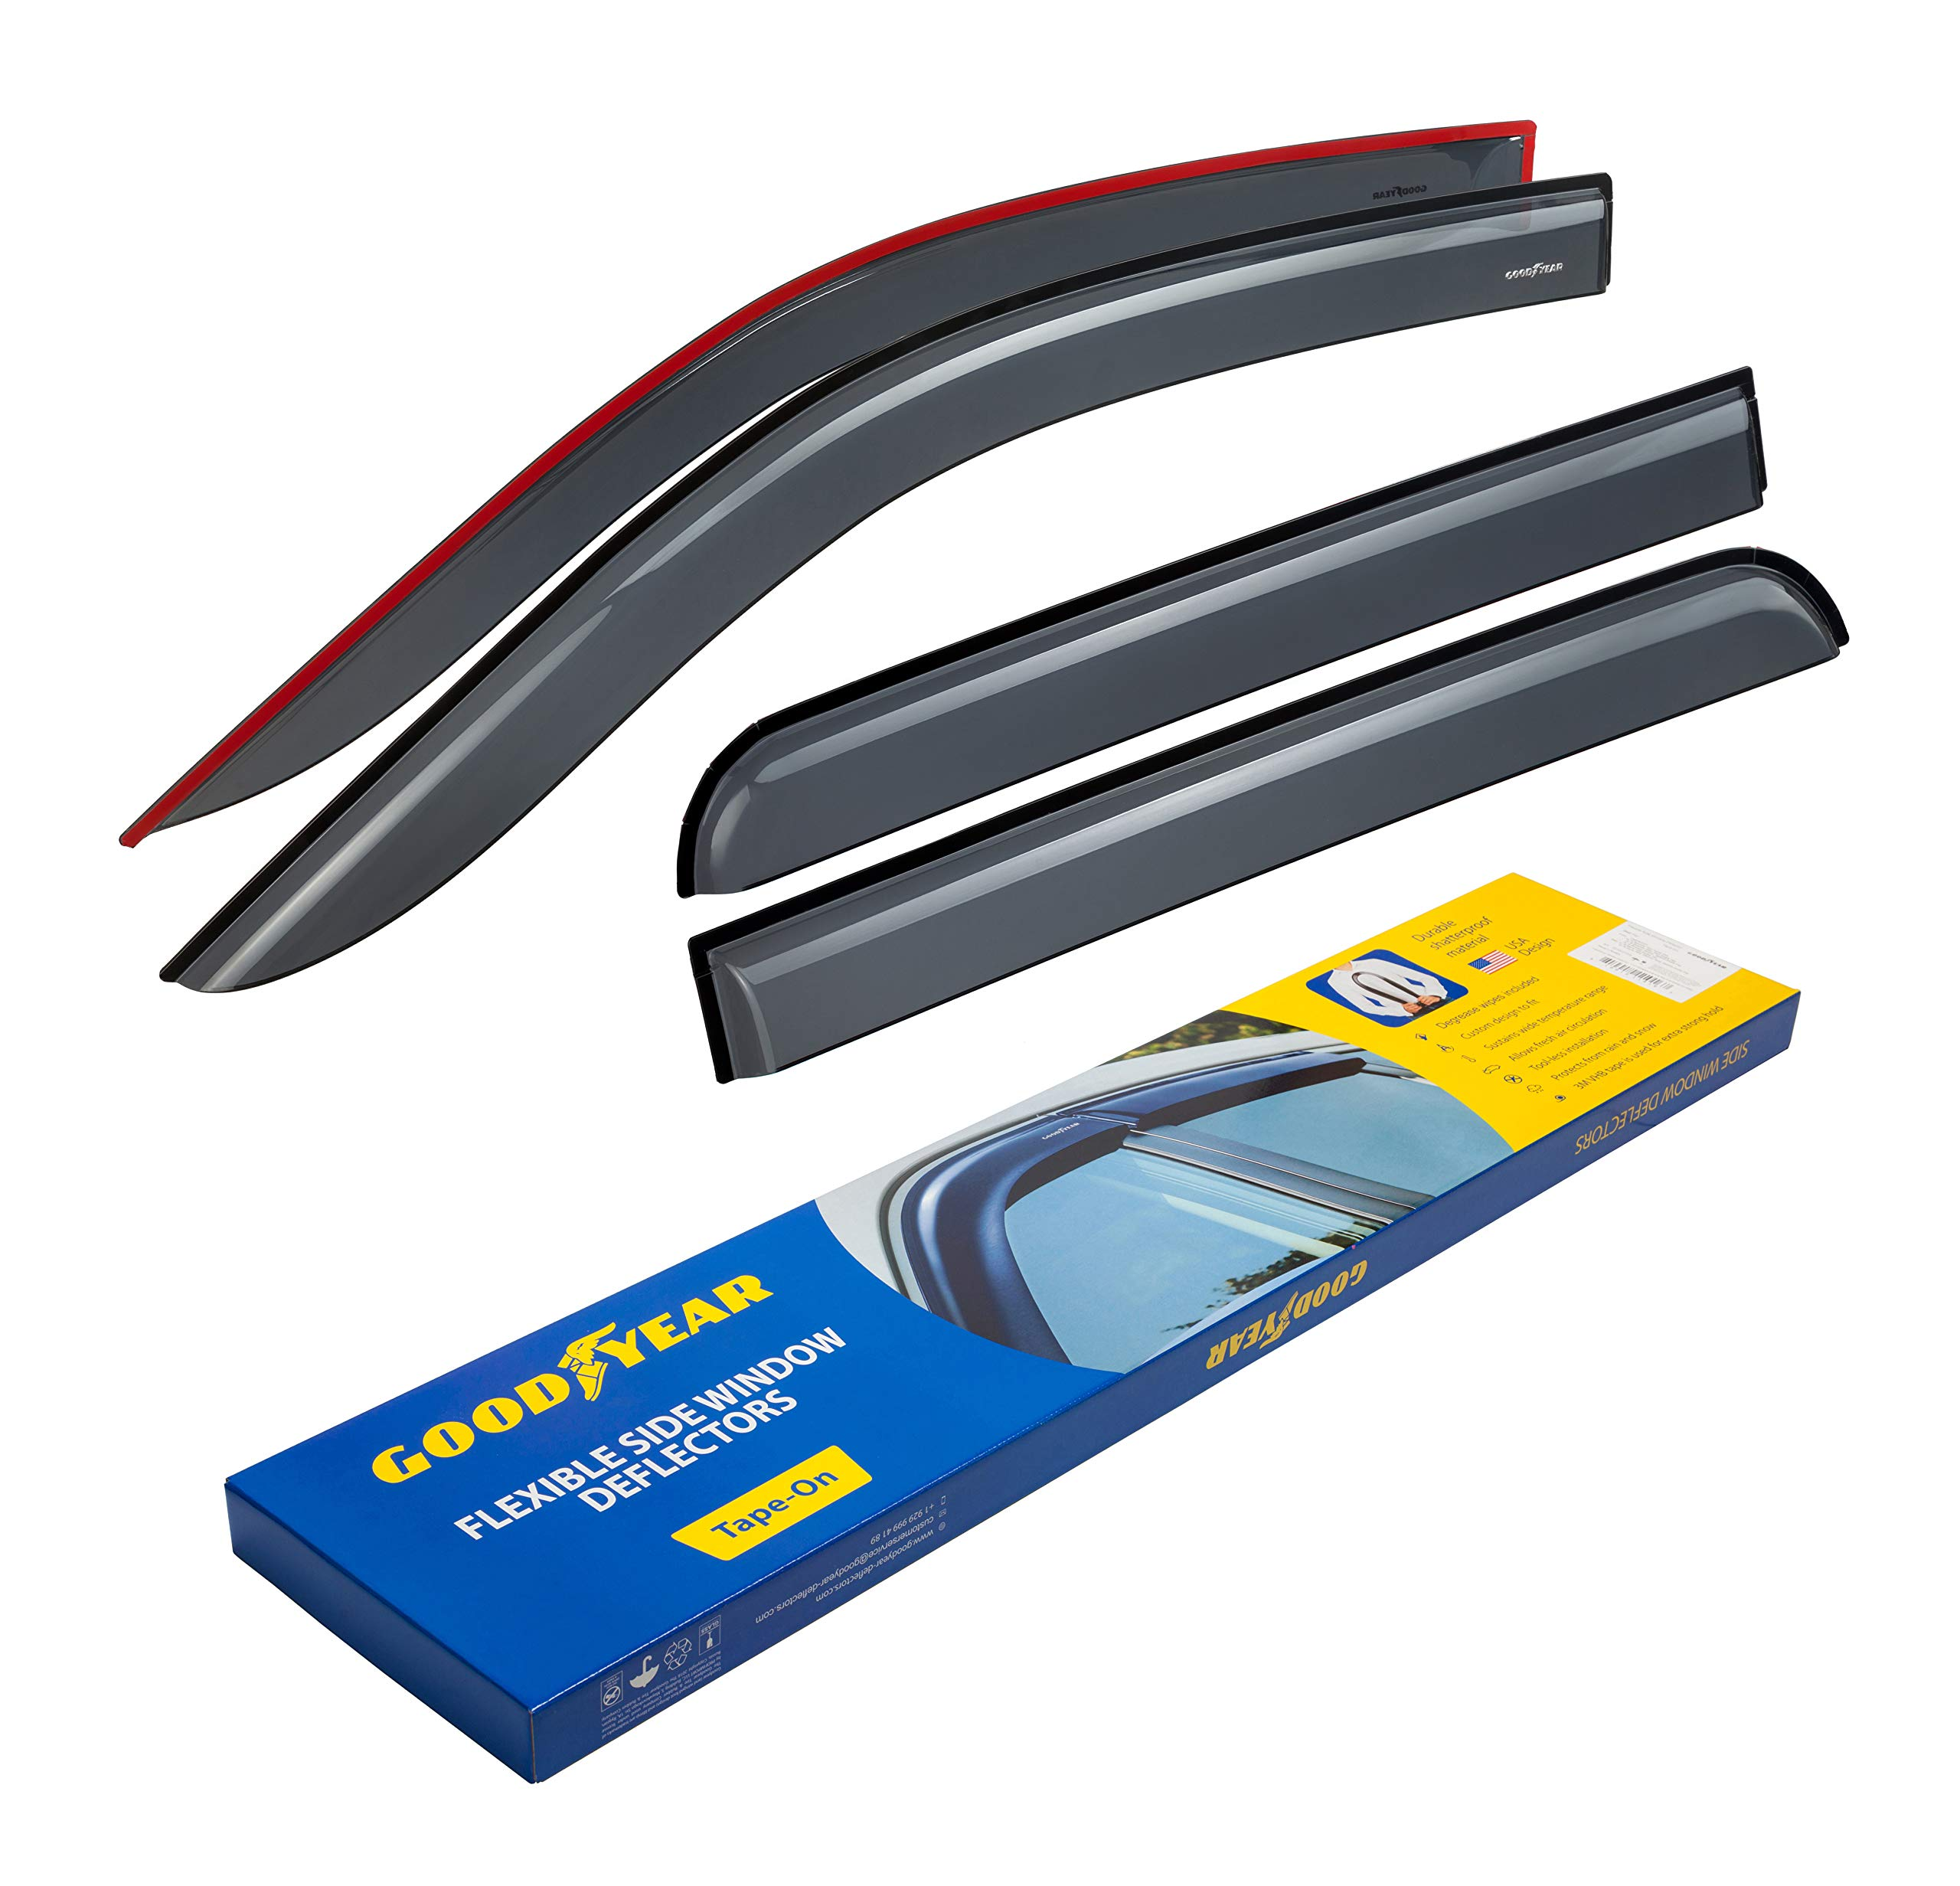 Goodyear Shatterproof Side Window Deflectors for Trucks Ford F-150 2009-2014 SuperCrew Cab, Tape-on Rain Guards, Vent Window Visors, 4 Pieces - GY003110 by Goodyear